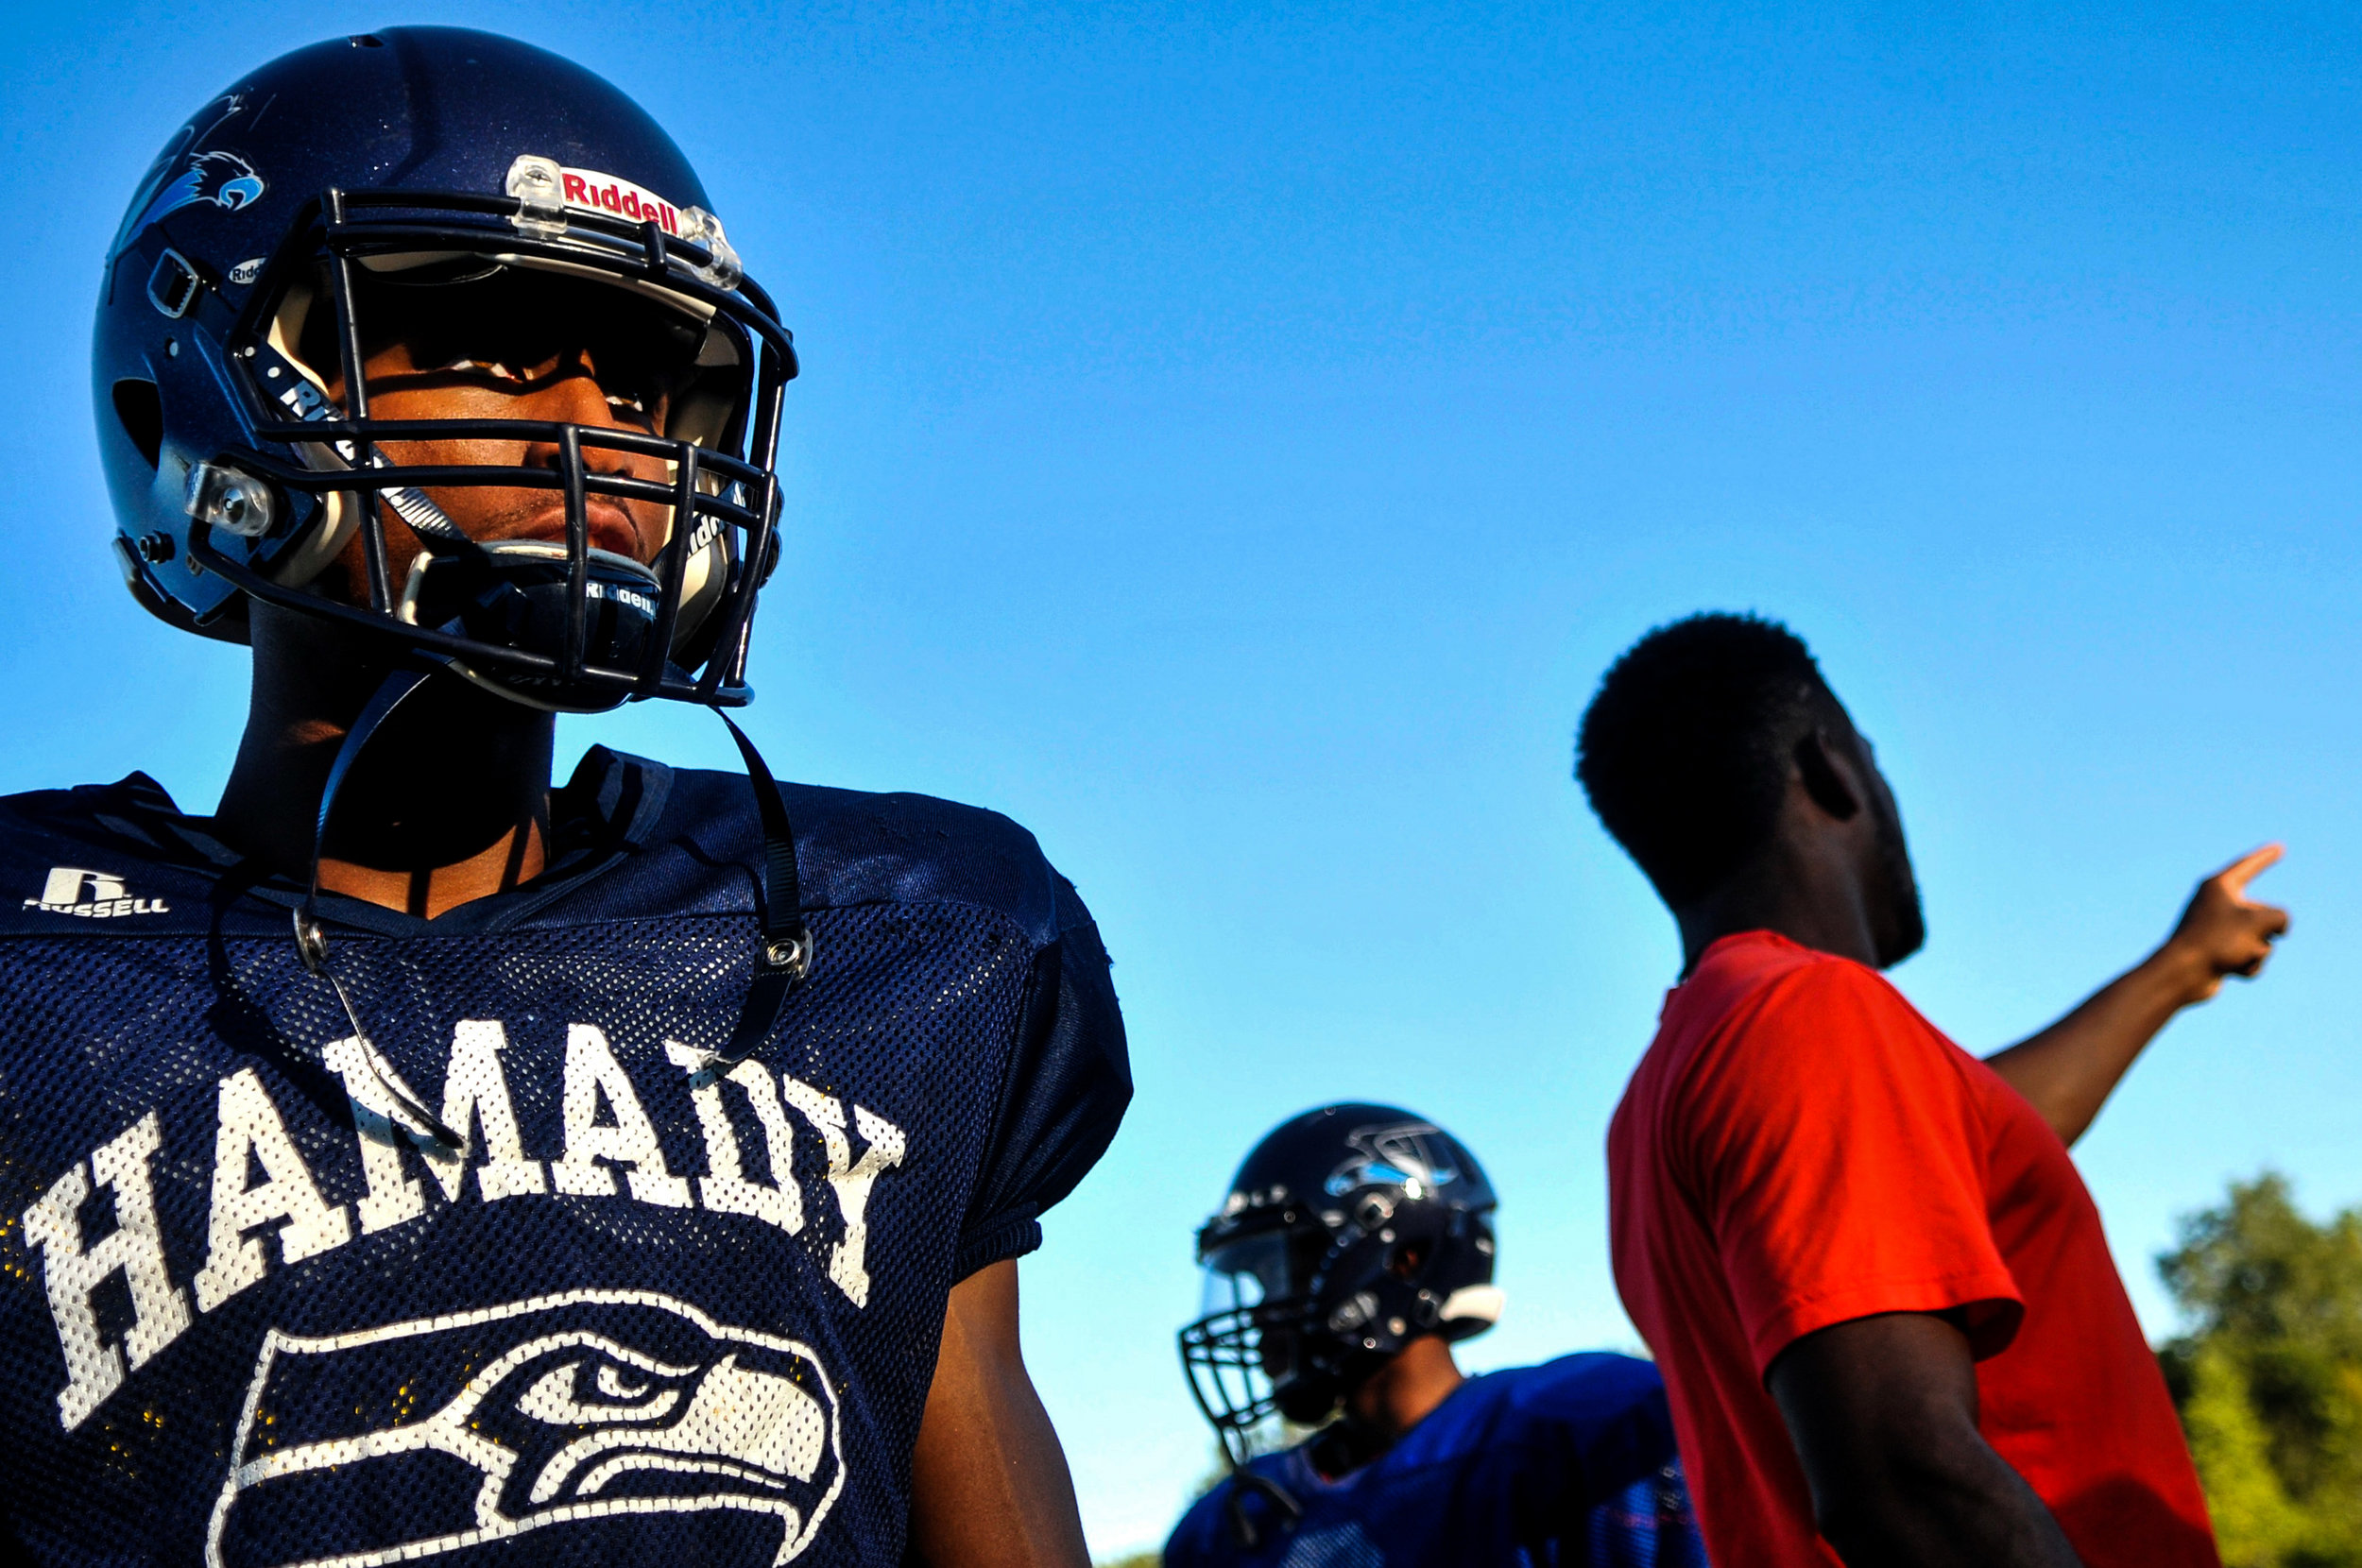 Hamady High School quarterback Amarr Blake, left, attends football practice on Tuesday, Sept. 20, 2016 at Hamady High School in Flint. Hamady High School is scheduled to play Durand High School on Friday at 7 p.m. at Durand.